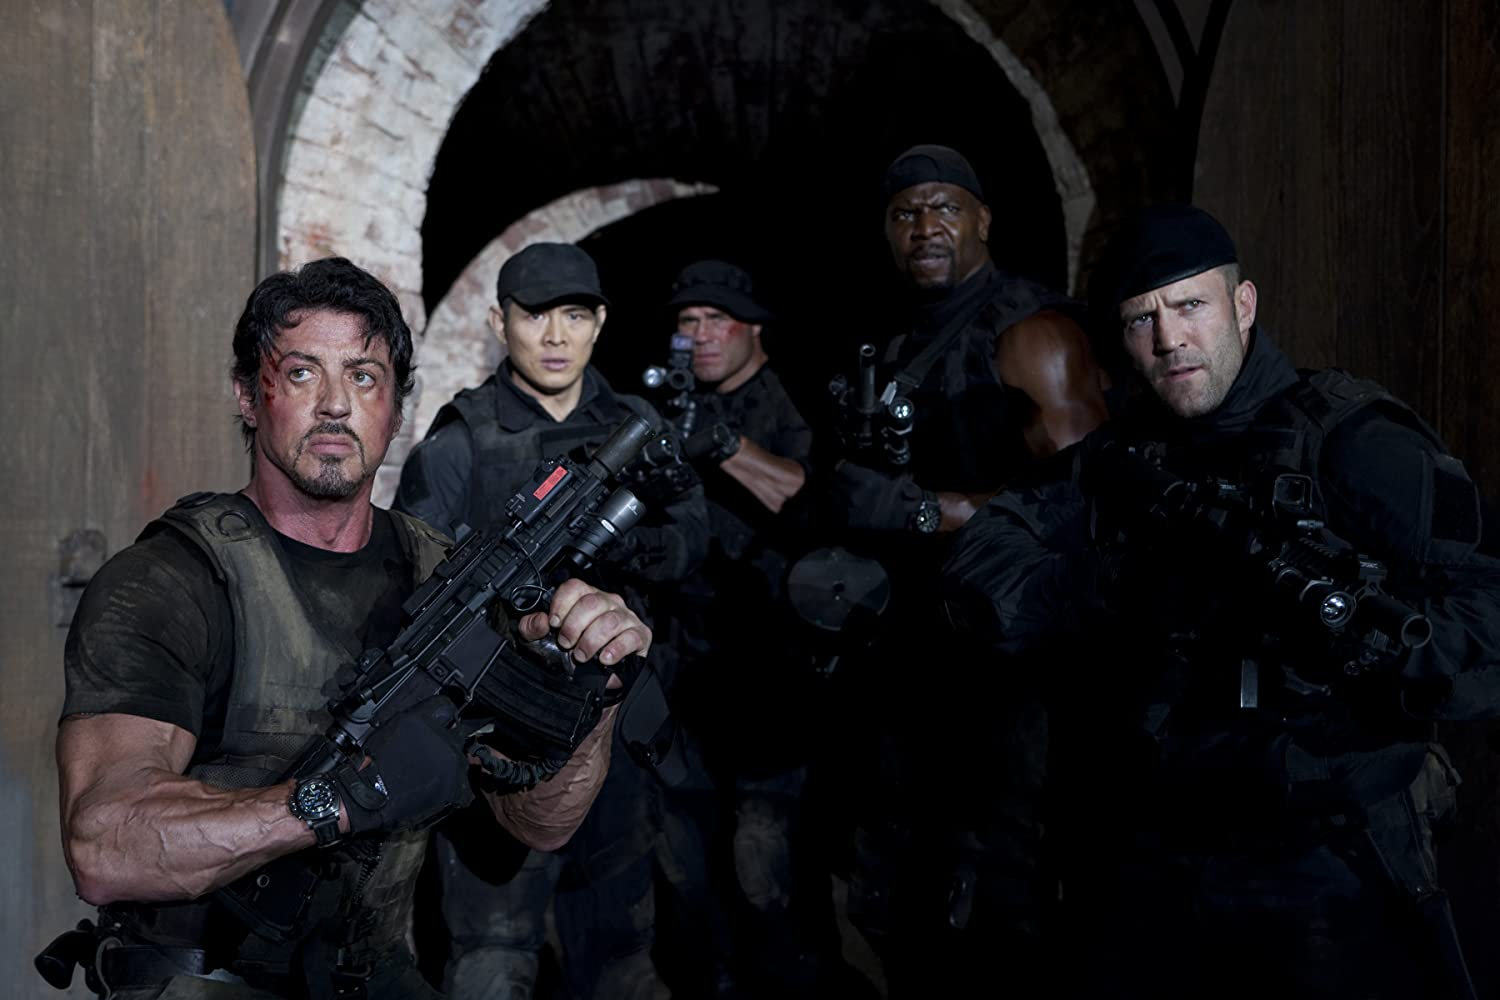 Sylvester Stallone, Jet Li, Jason Statham, Terry Crews, and Randy Couture in The Expendables (2010)